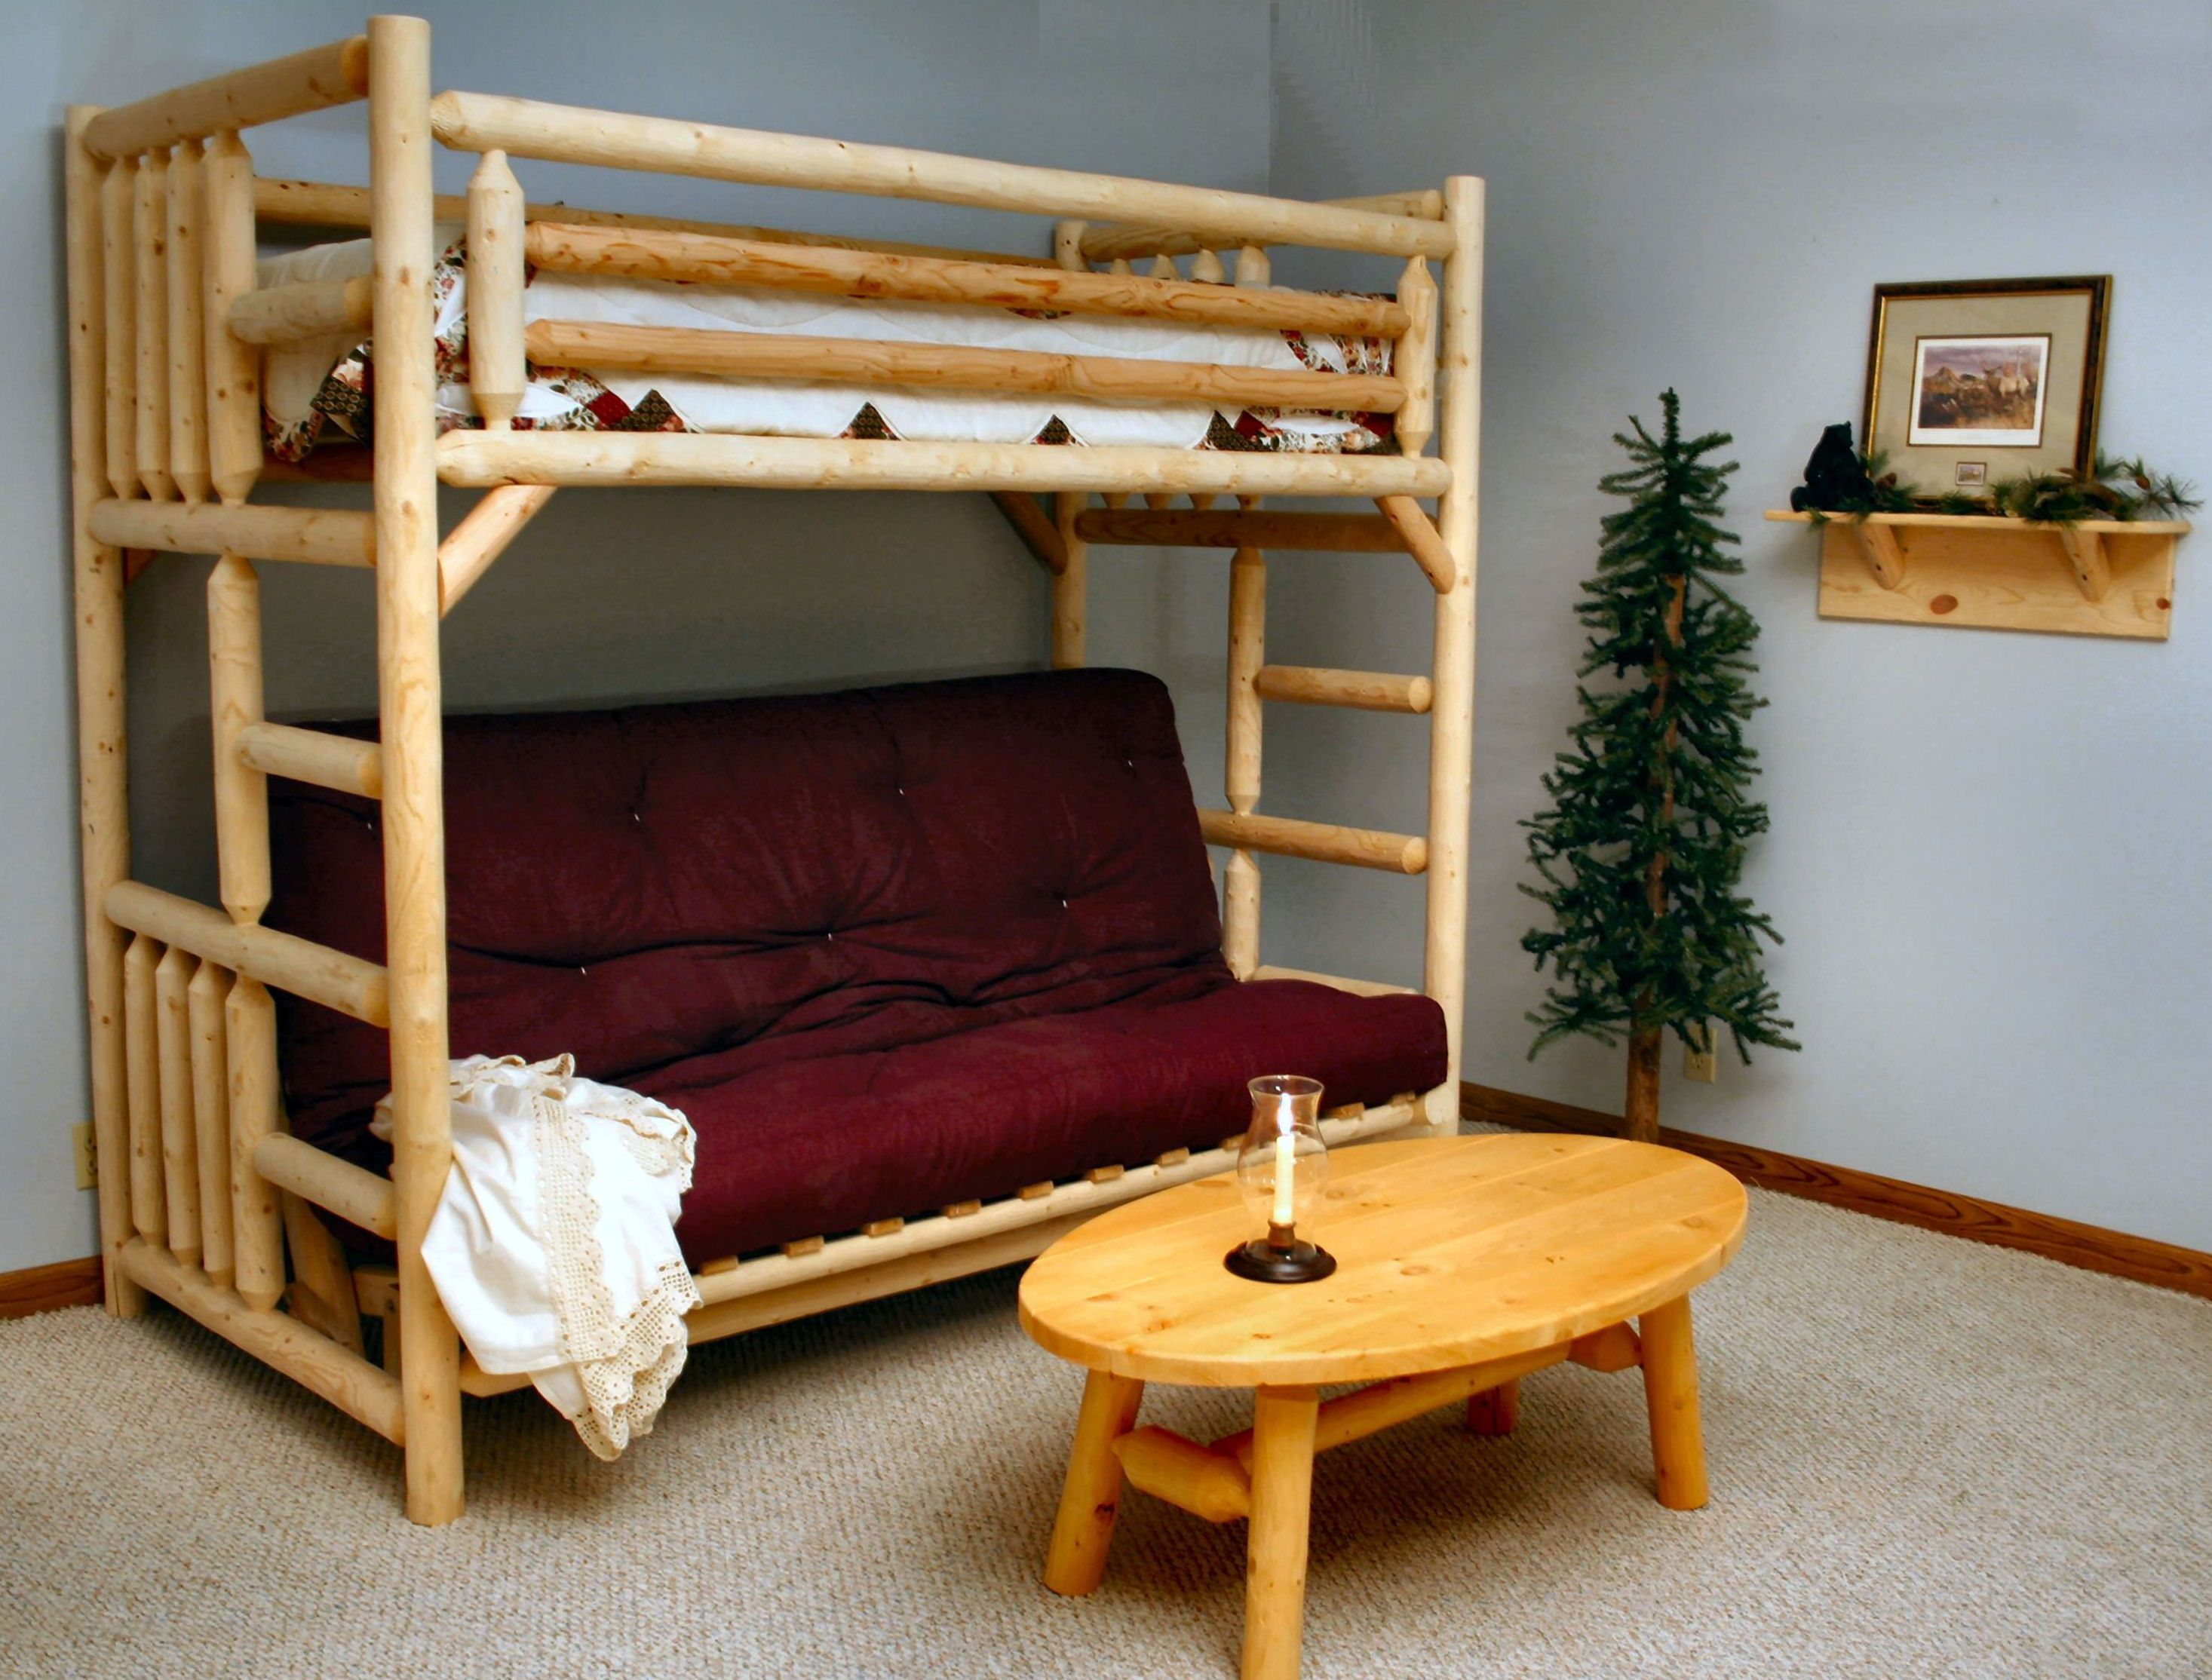 Cool futons for teens - Twin Over Futon Bunk Bed Unfinished Lakeland Mills Futon